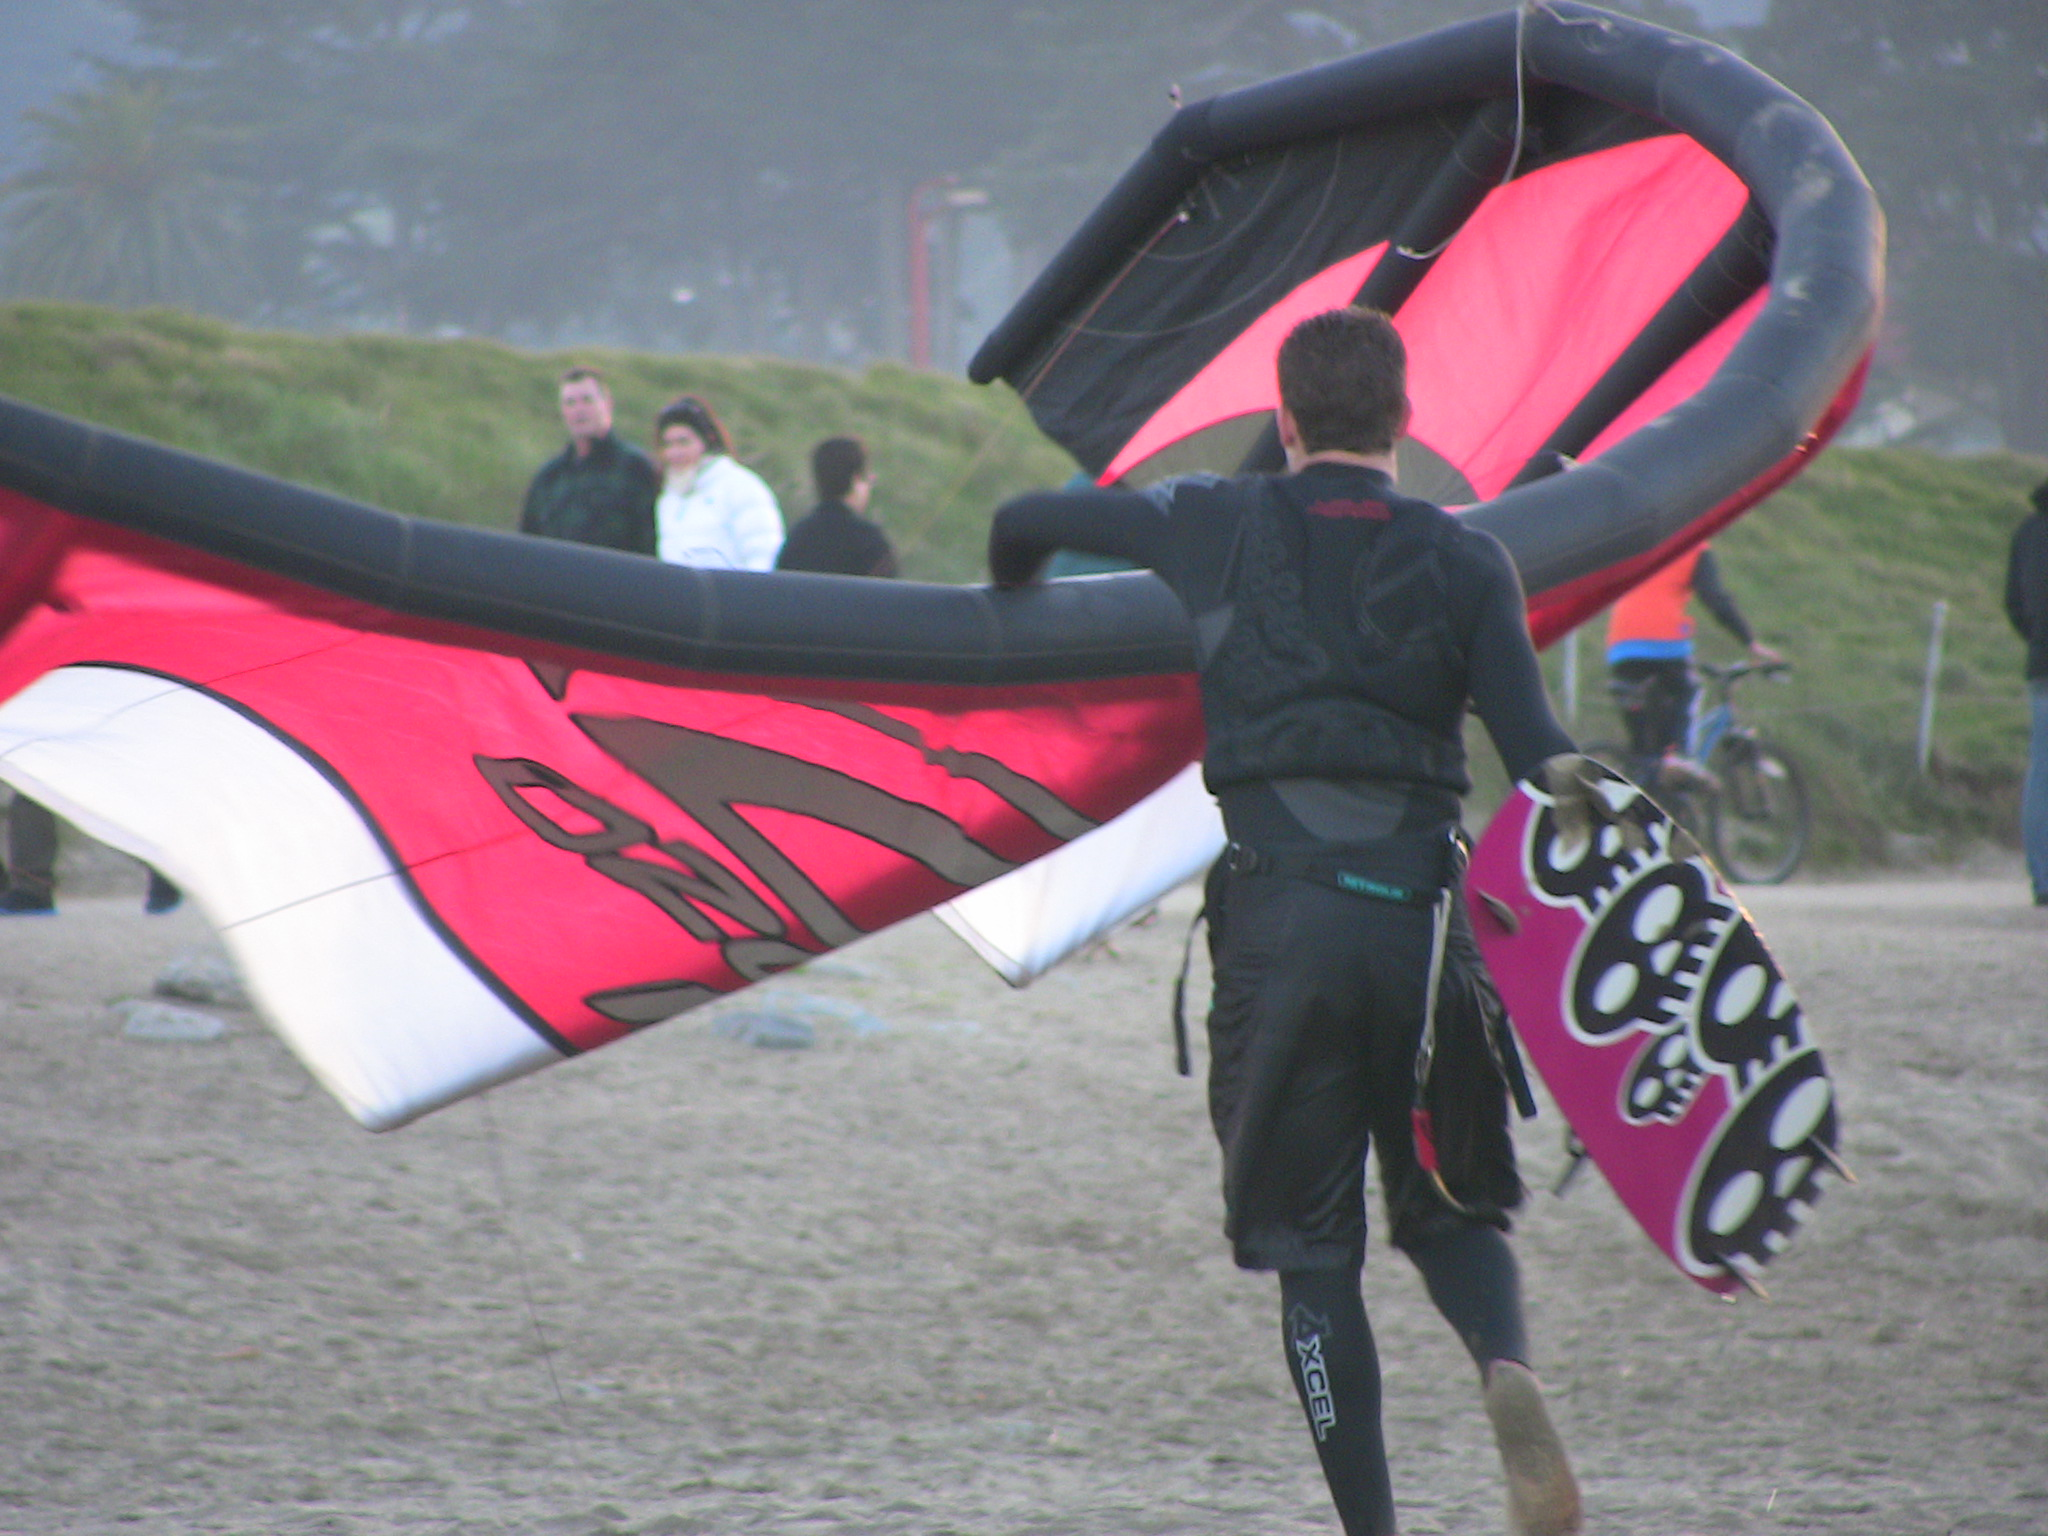 Windsurfer at Crissy Field